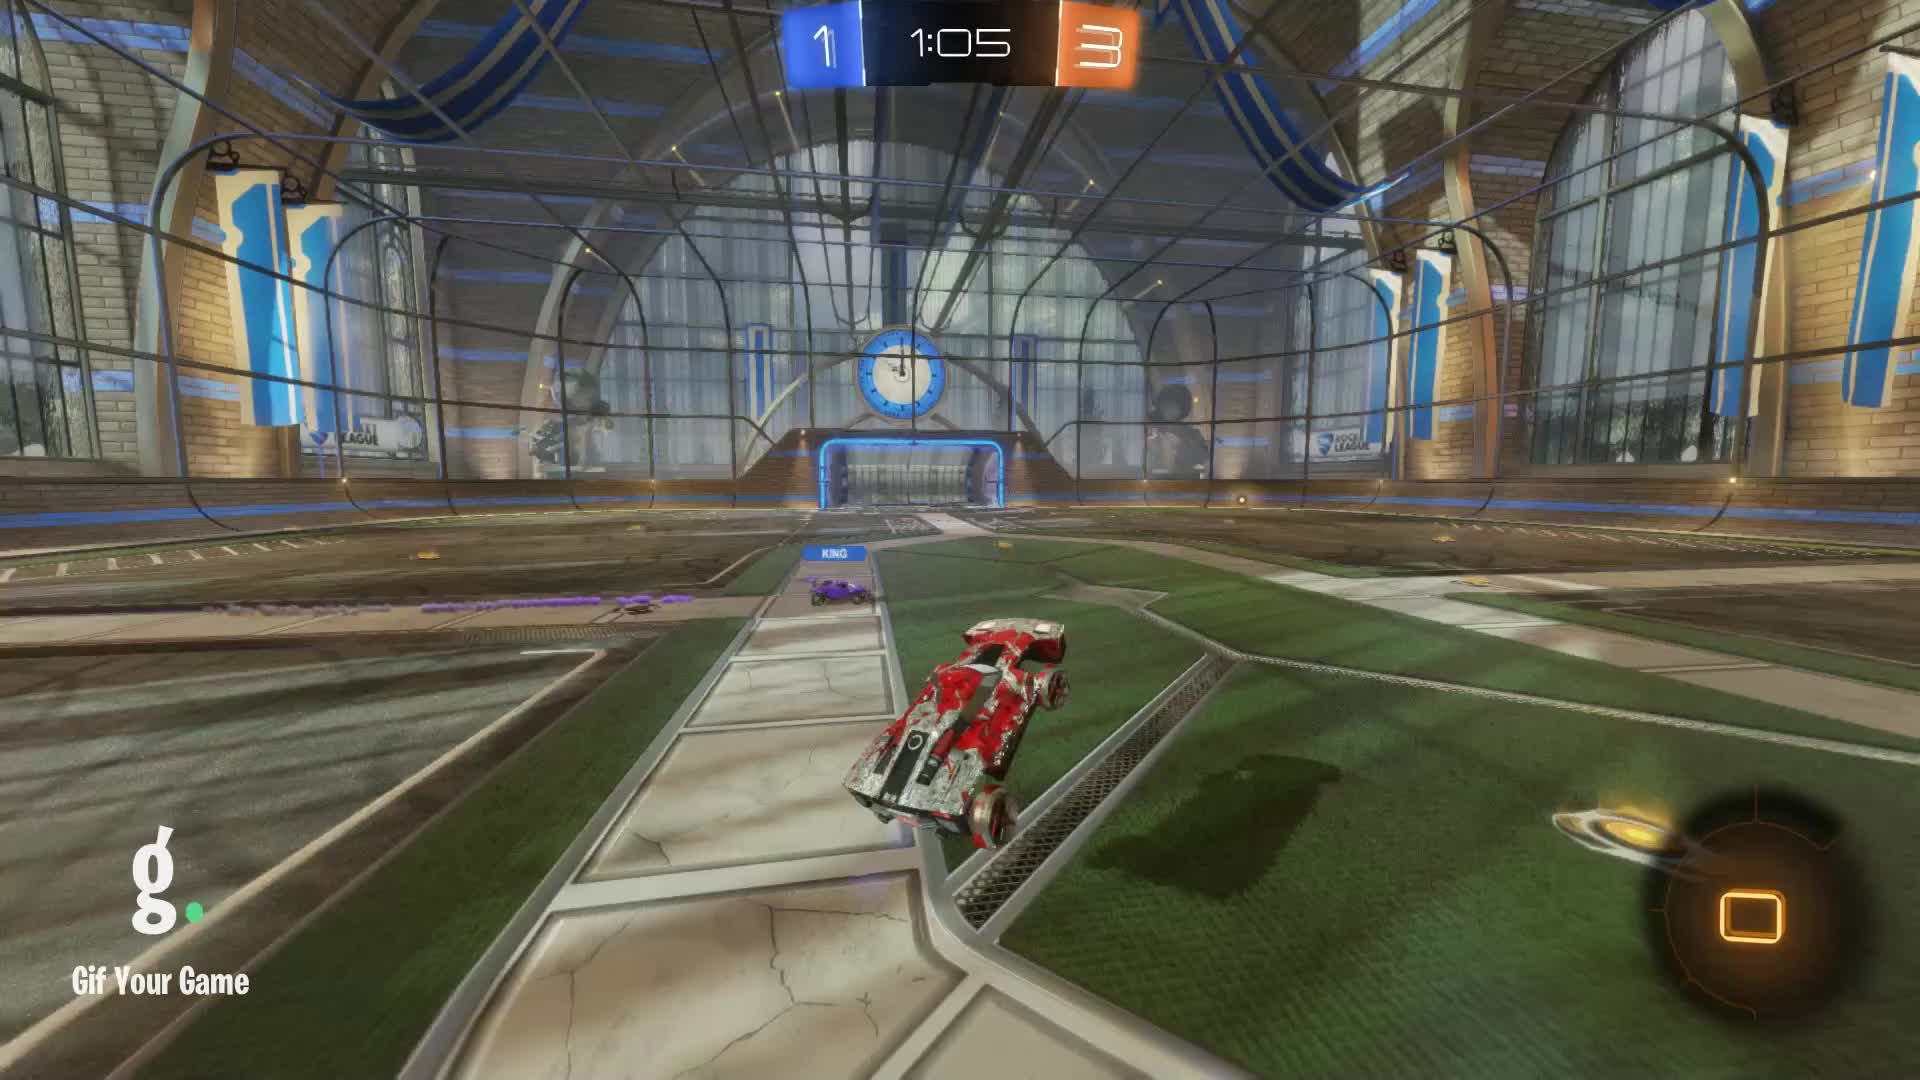 Gif Your Game, GifYourGame, Goal, Rocket League, RocketLeague, SaxySloth, Goal 5: SaxySloth GIFs